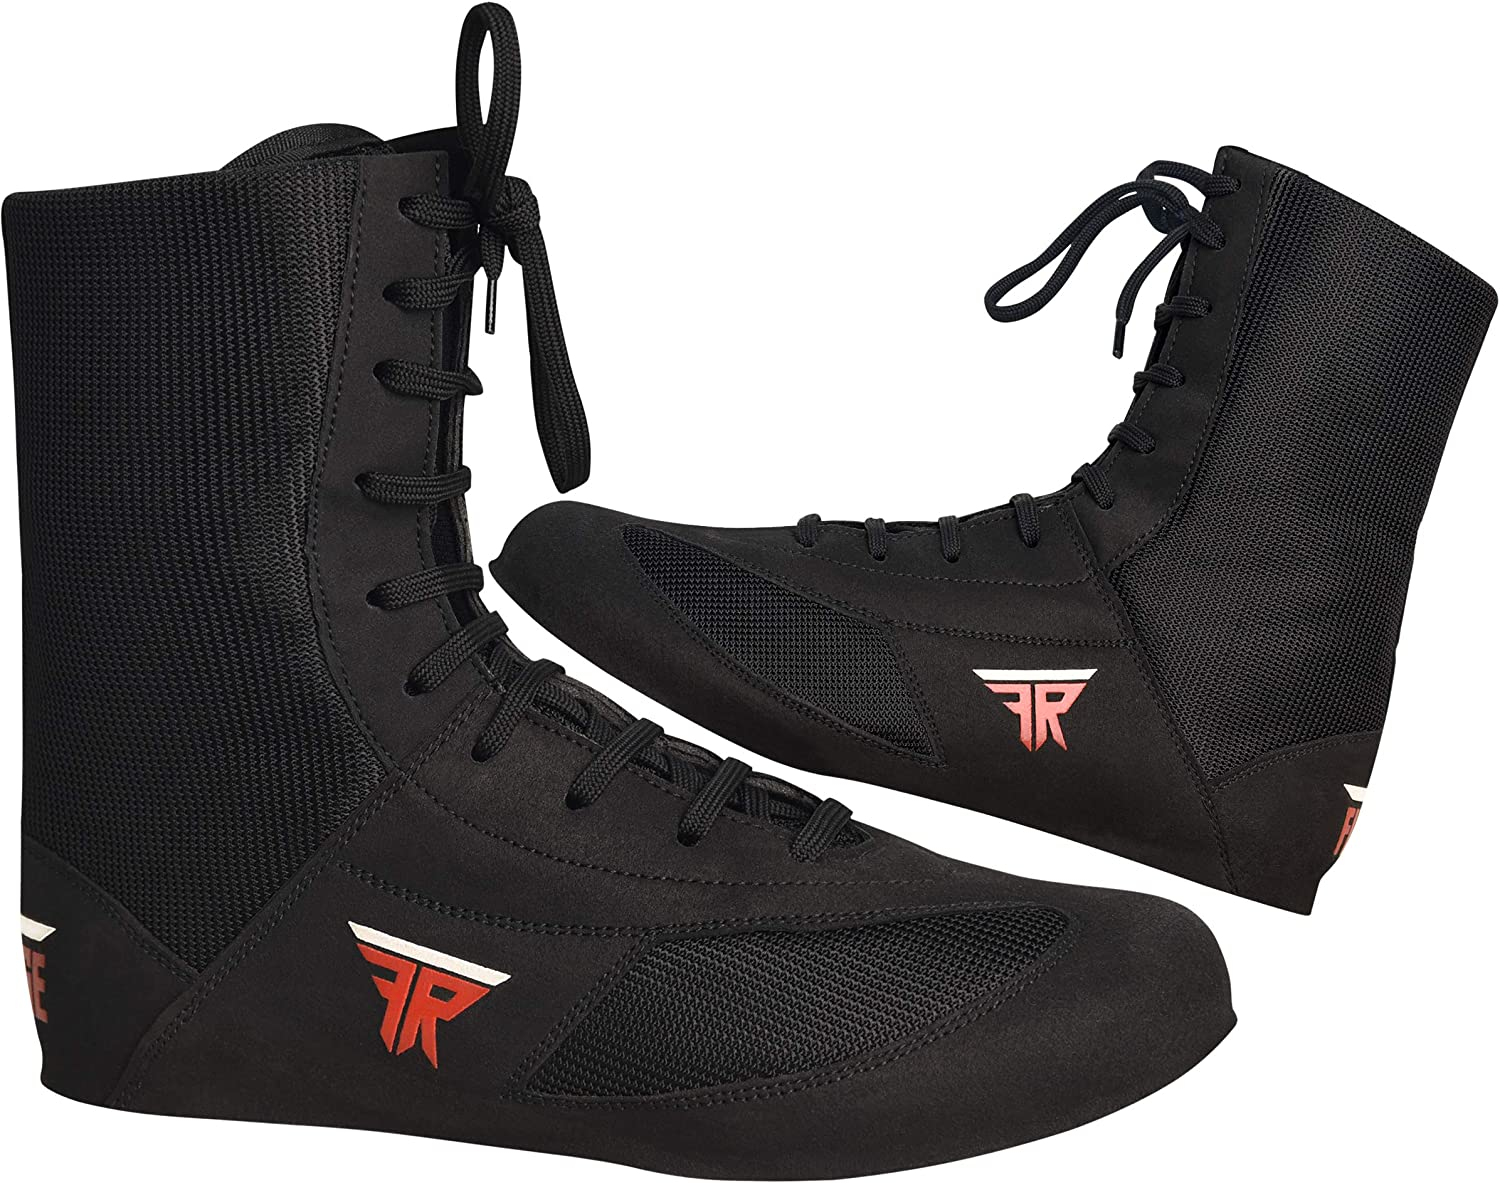 Black Color Boxing Shoes for Adults FISTRGE Leather High Top Kick Boxing Shoes Fighting Sports Master Training Mesh Unisex Pro Mens and Youth Genuine Boot Light Weight